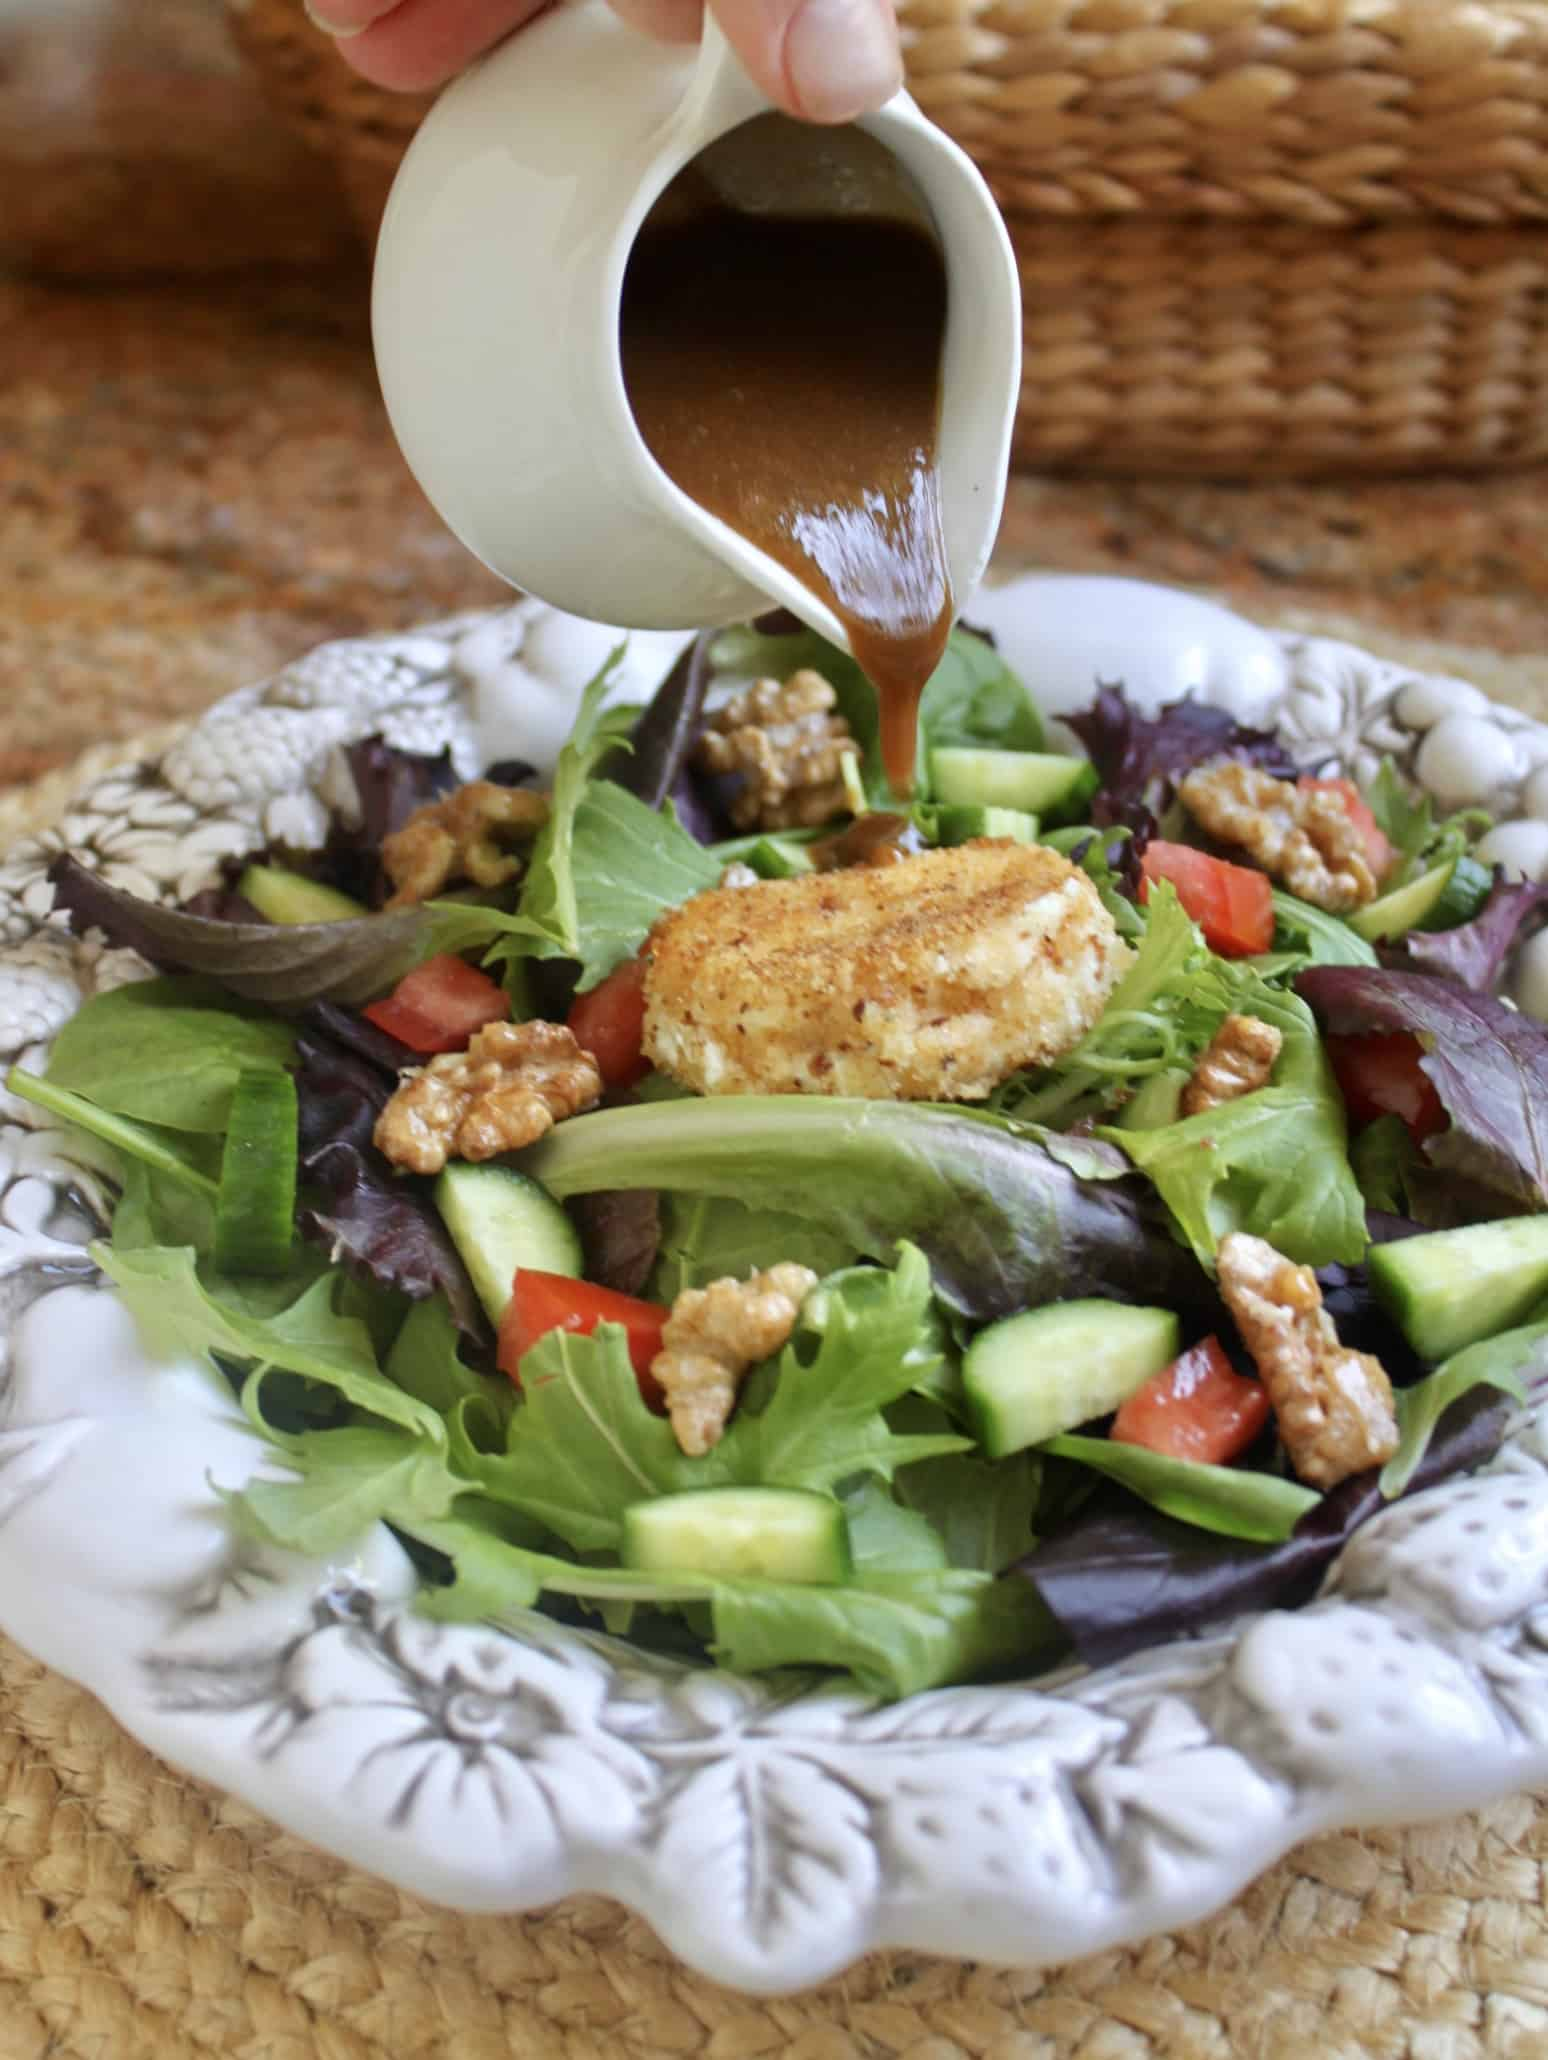 drizzling salad with vinaigrette